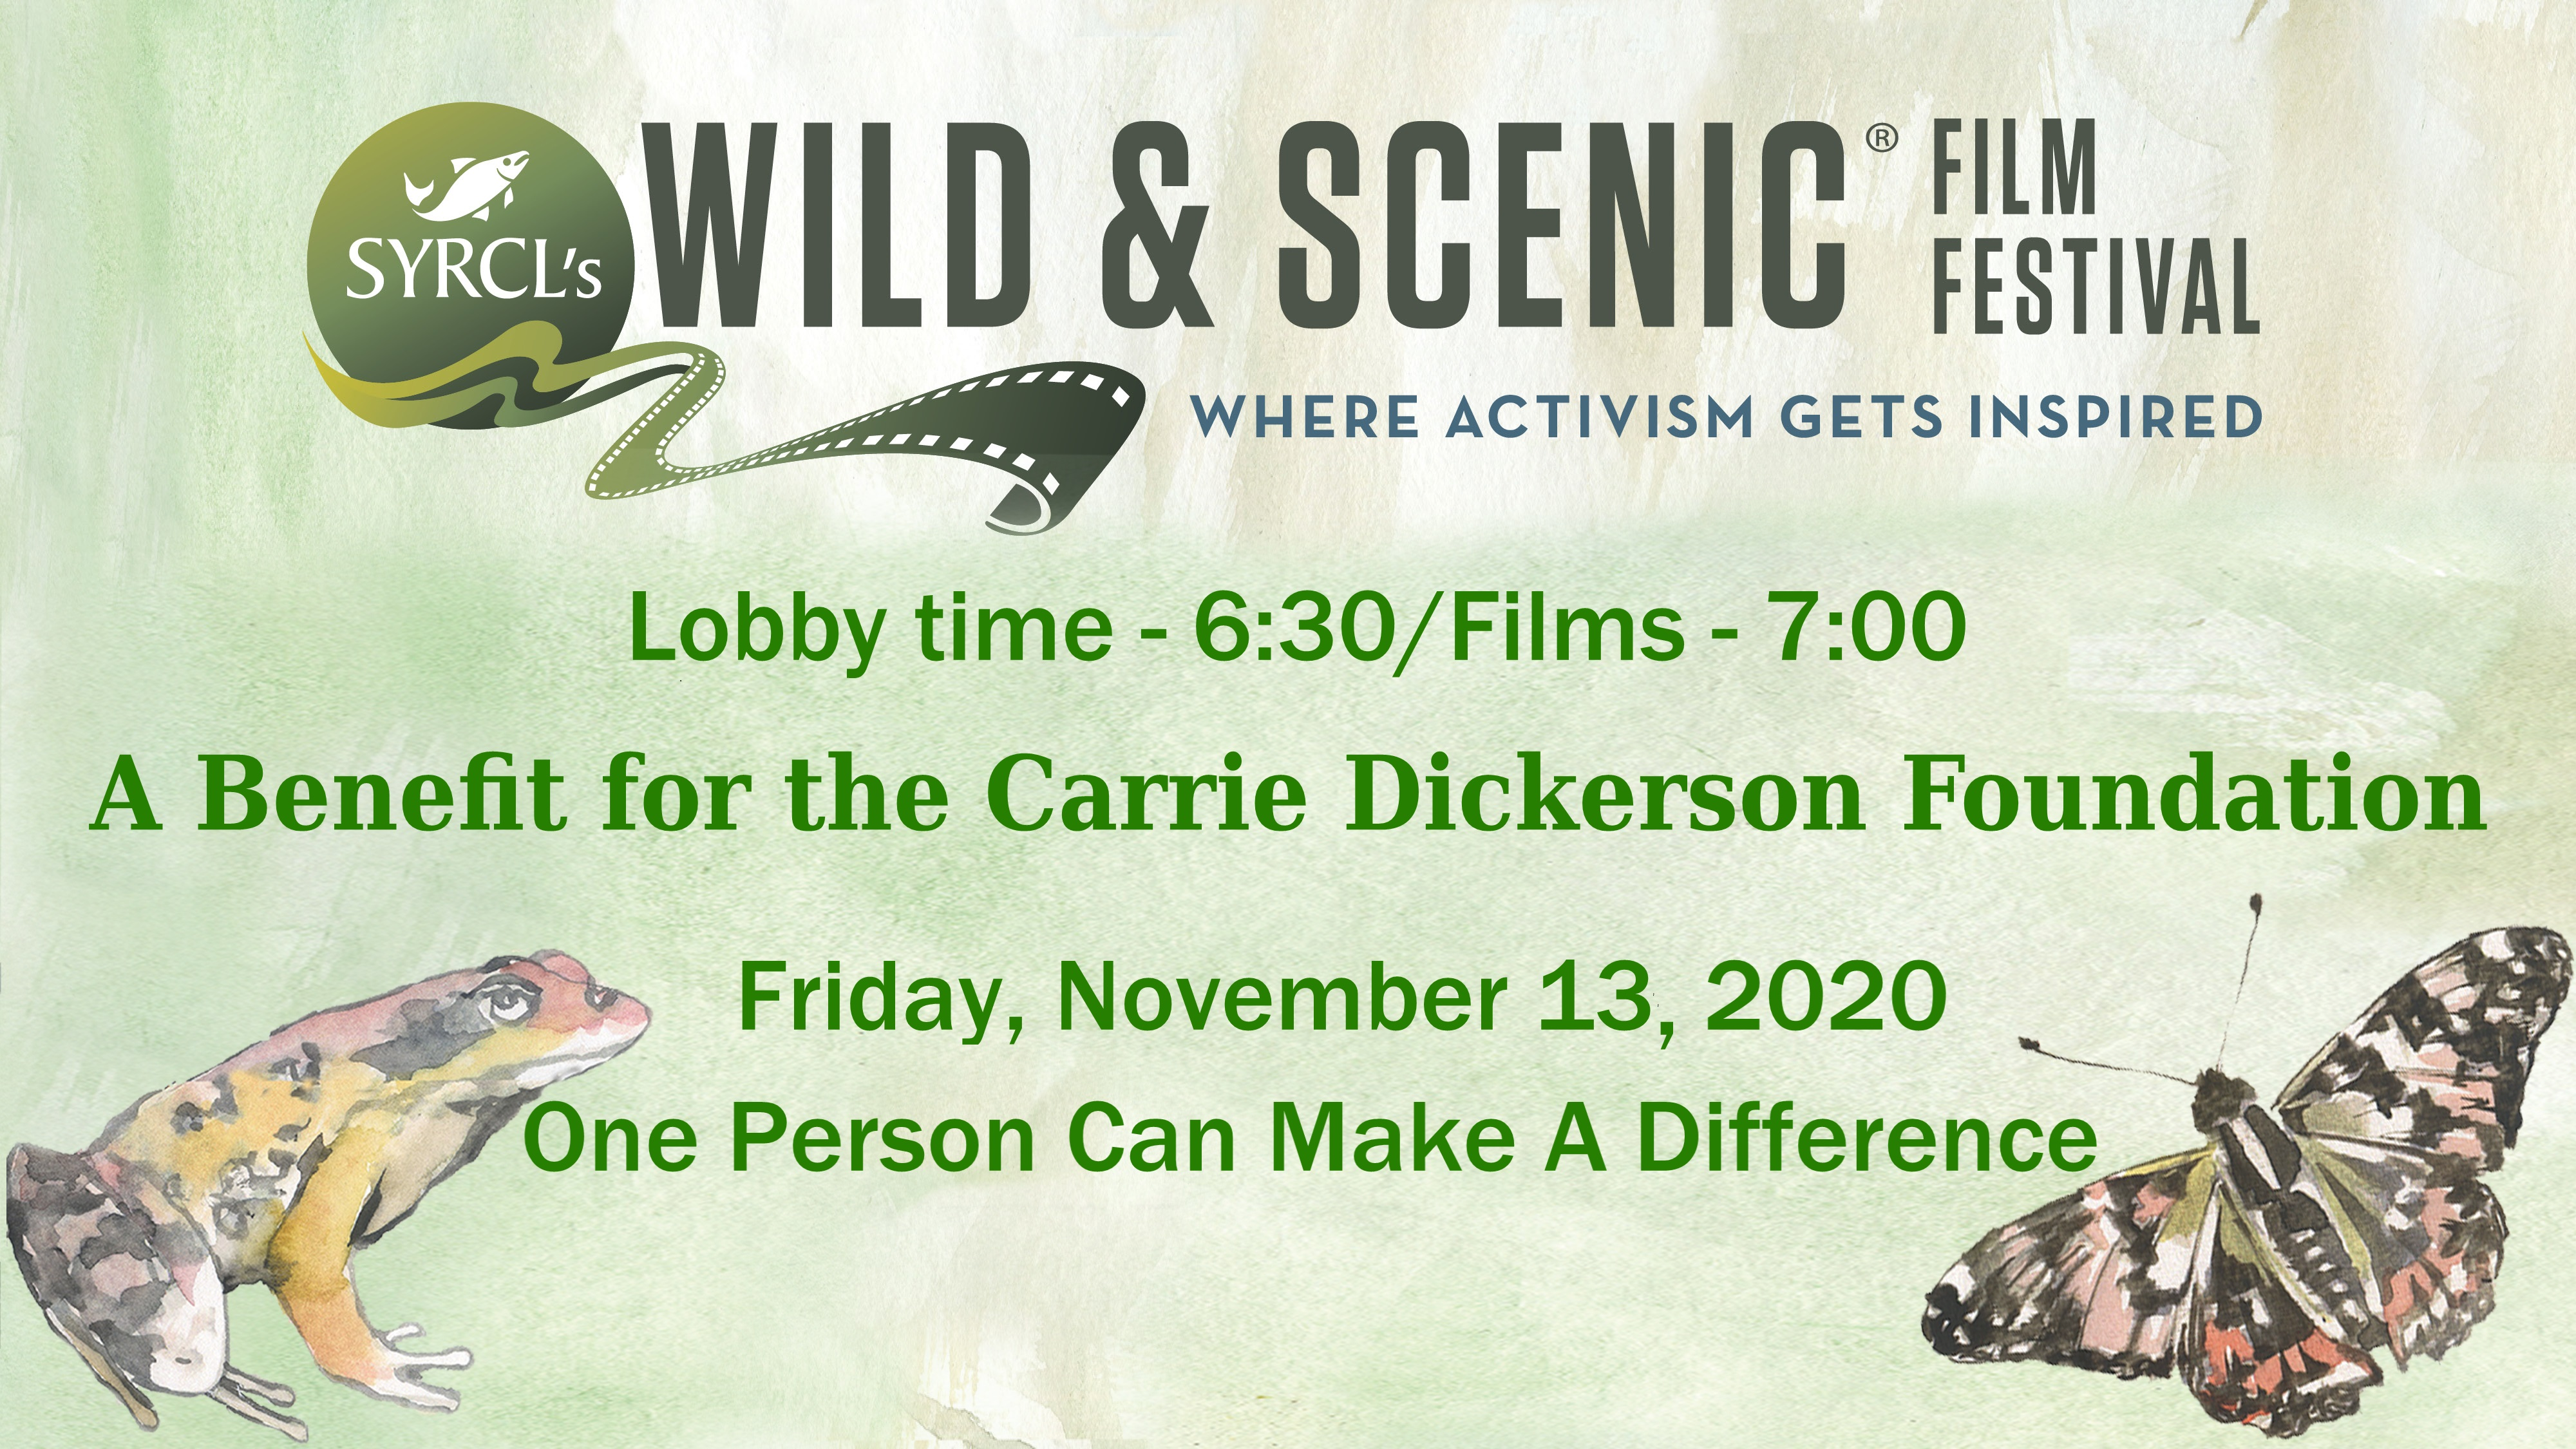 Carrie Dickerson Foundation Presents SYRCL's Wild & Scenic Film Festival On Tour